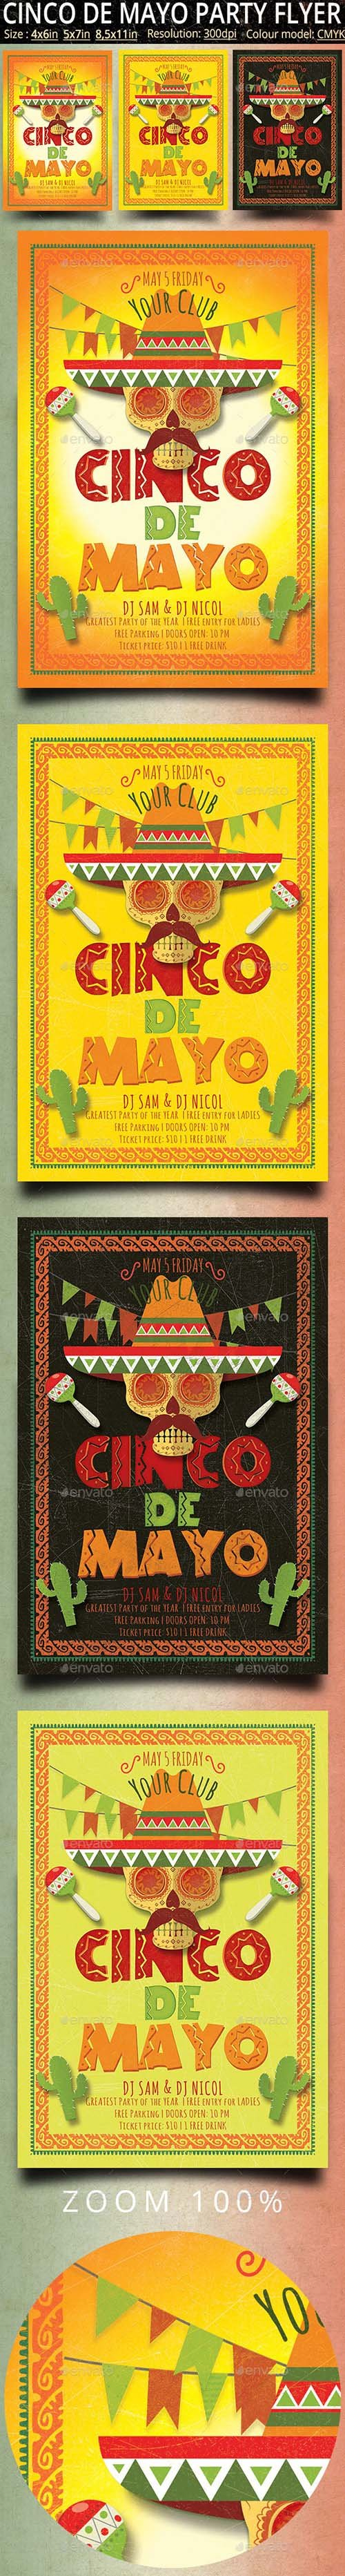 GR - Cinco de Mayo Vintage Flyer And Poster 21667486